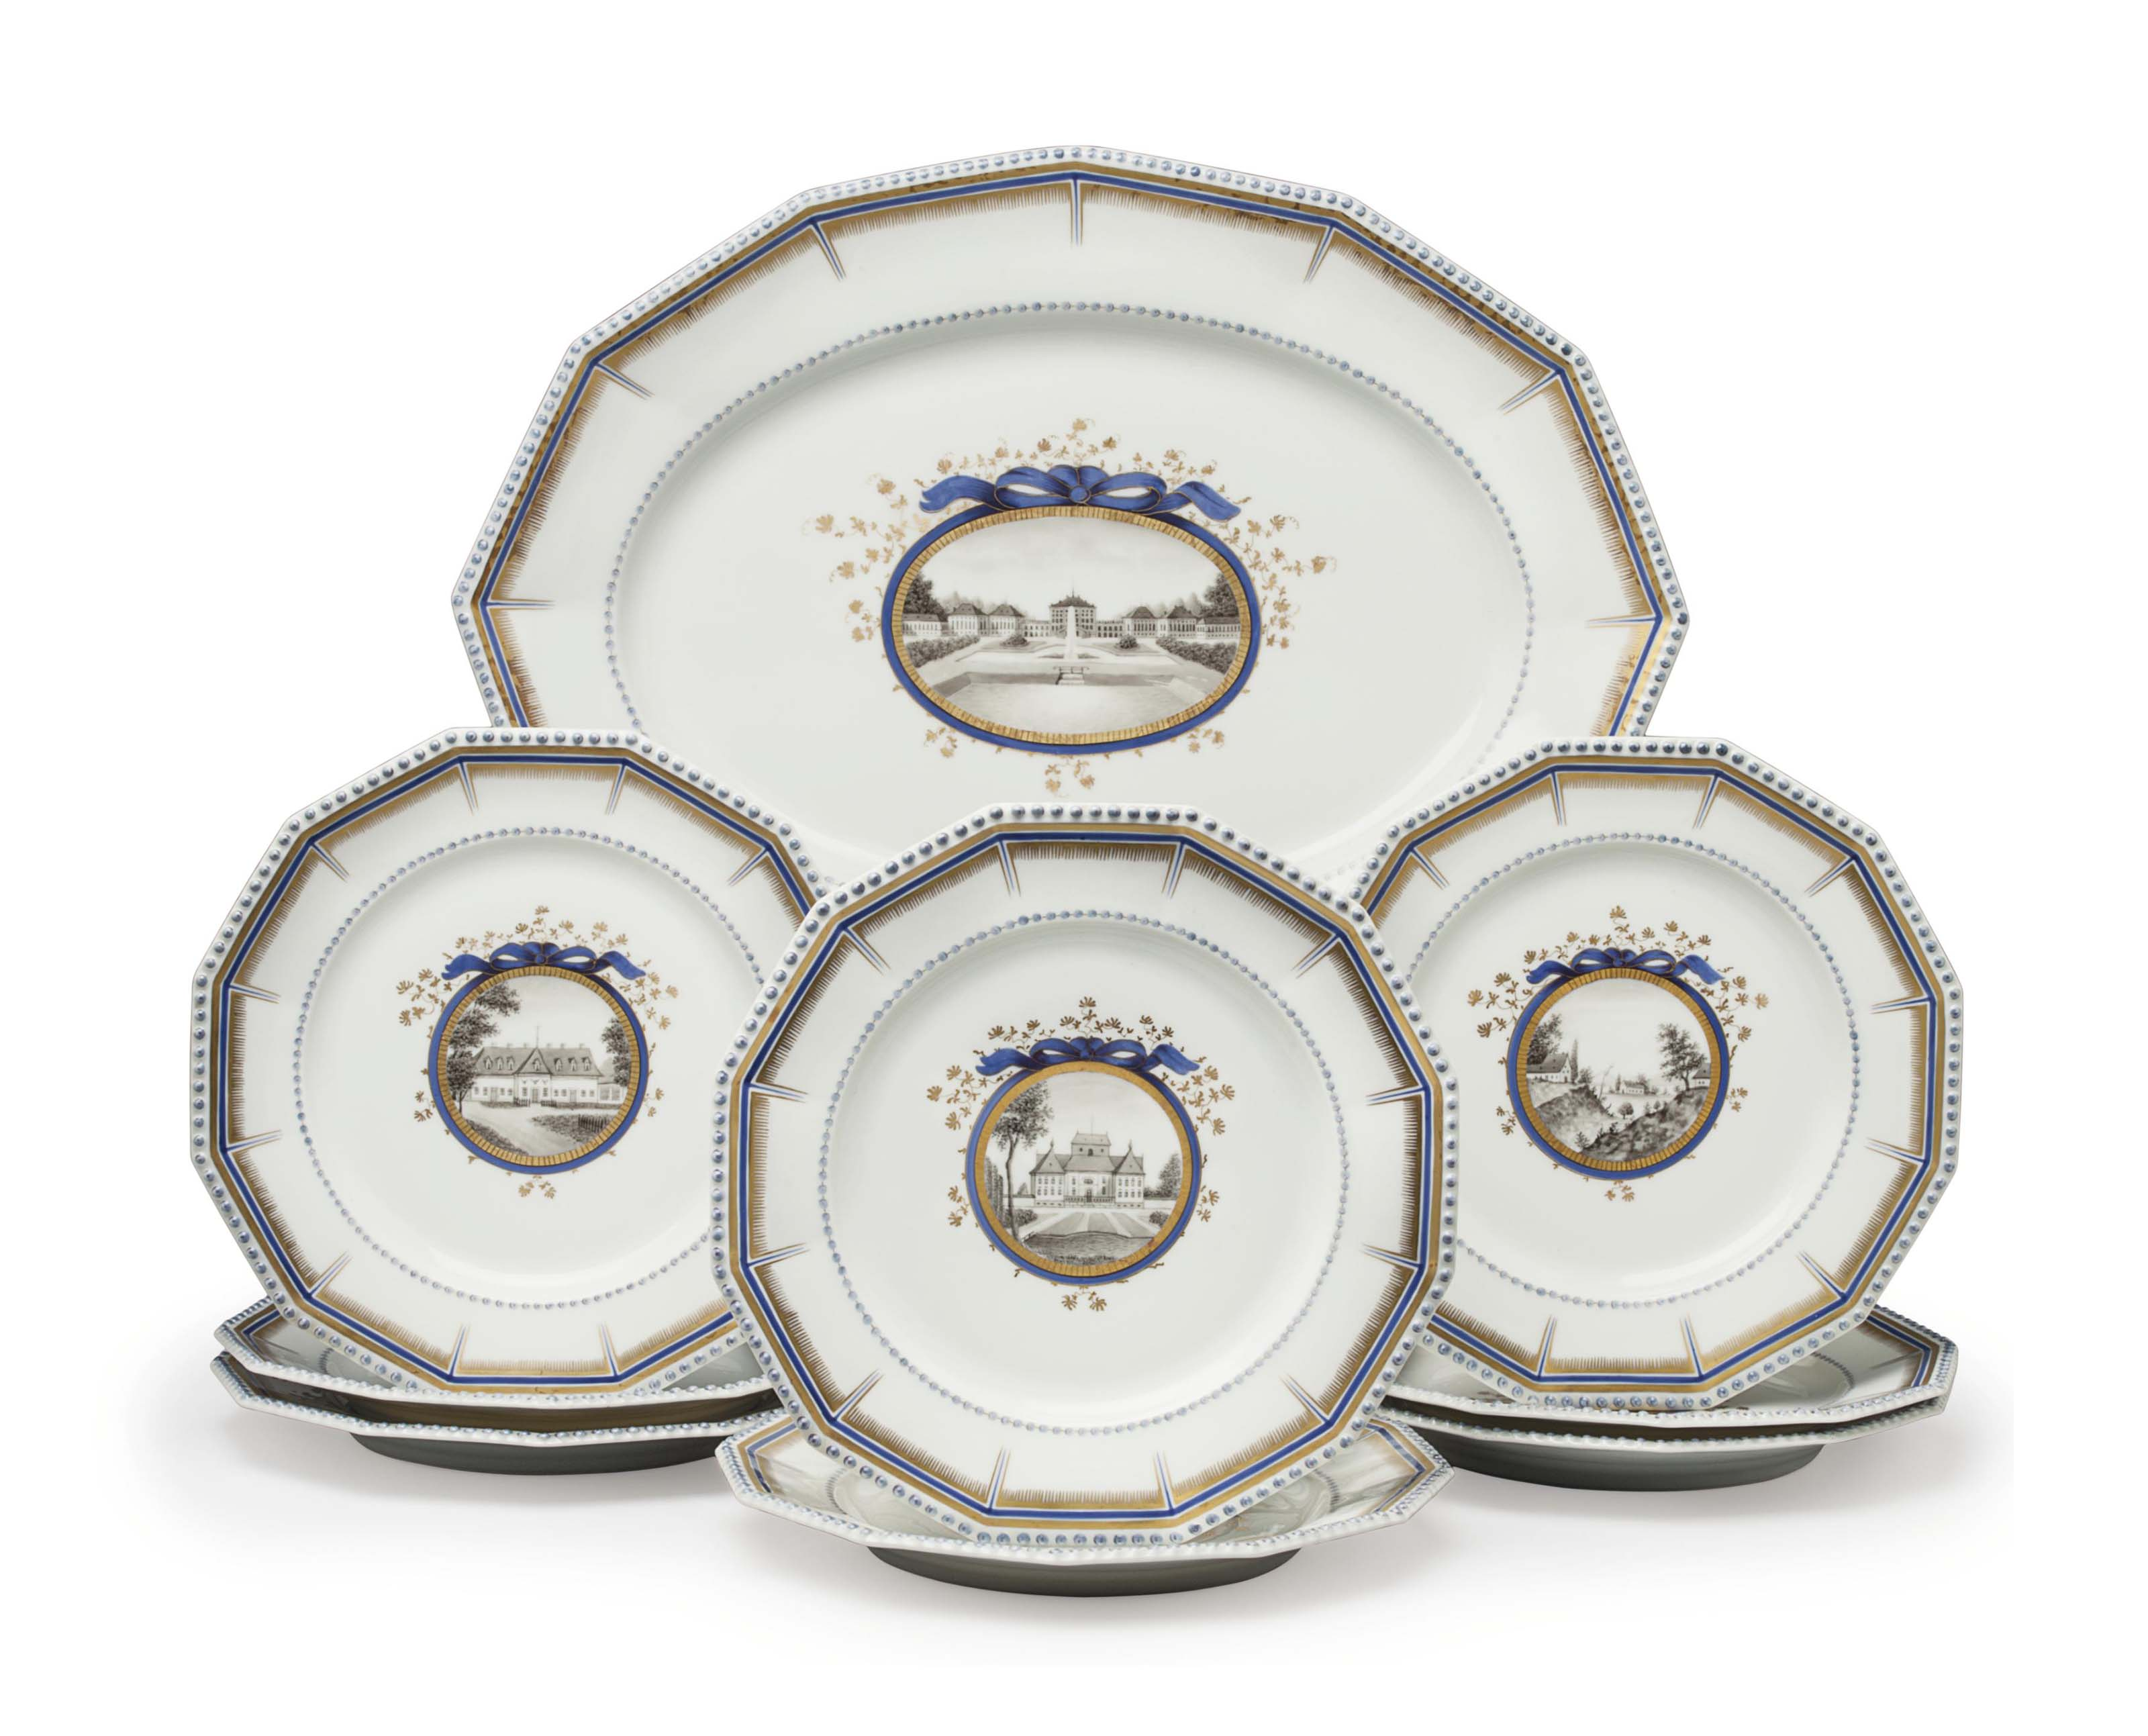 EIGHT NYMPHENBURG PORCELAIN 'PERLSERVICE' DINNER PLATES AND A LARGE PLATTER